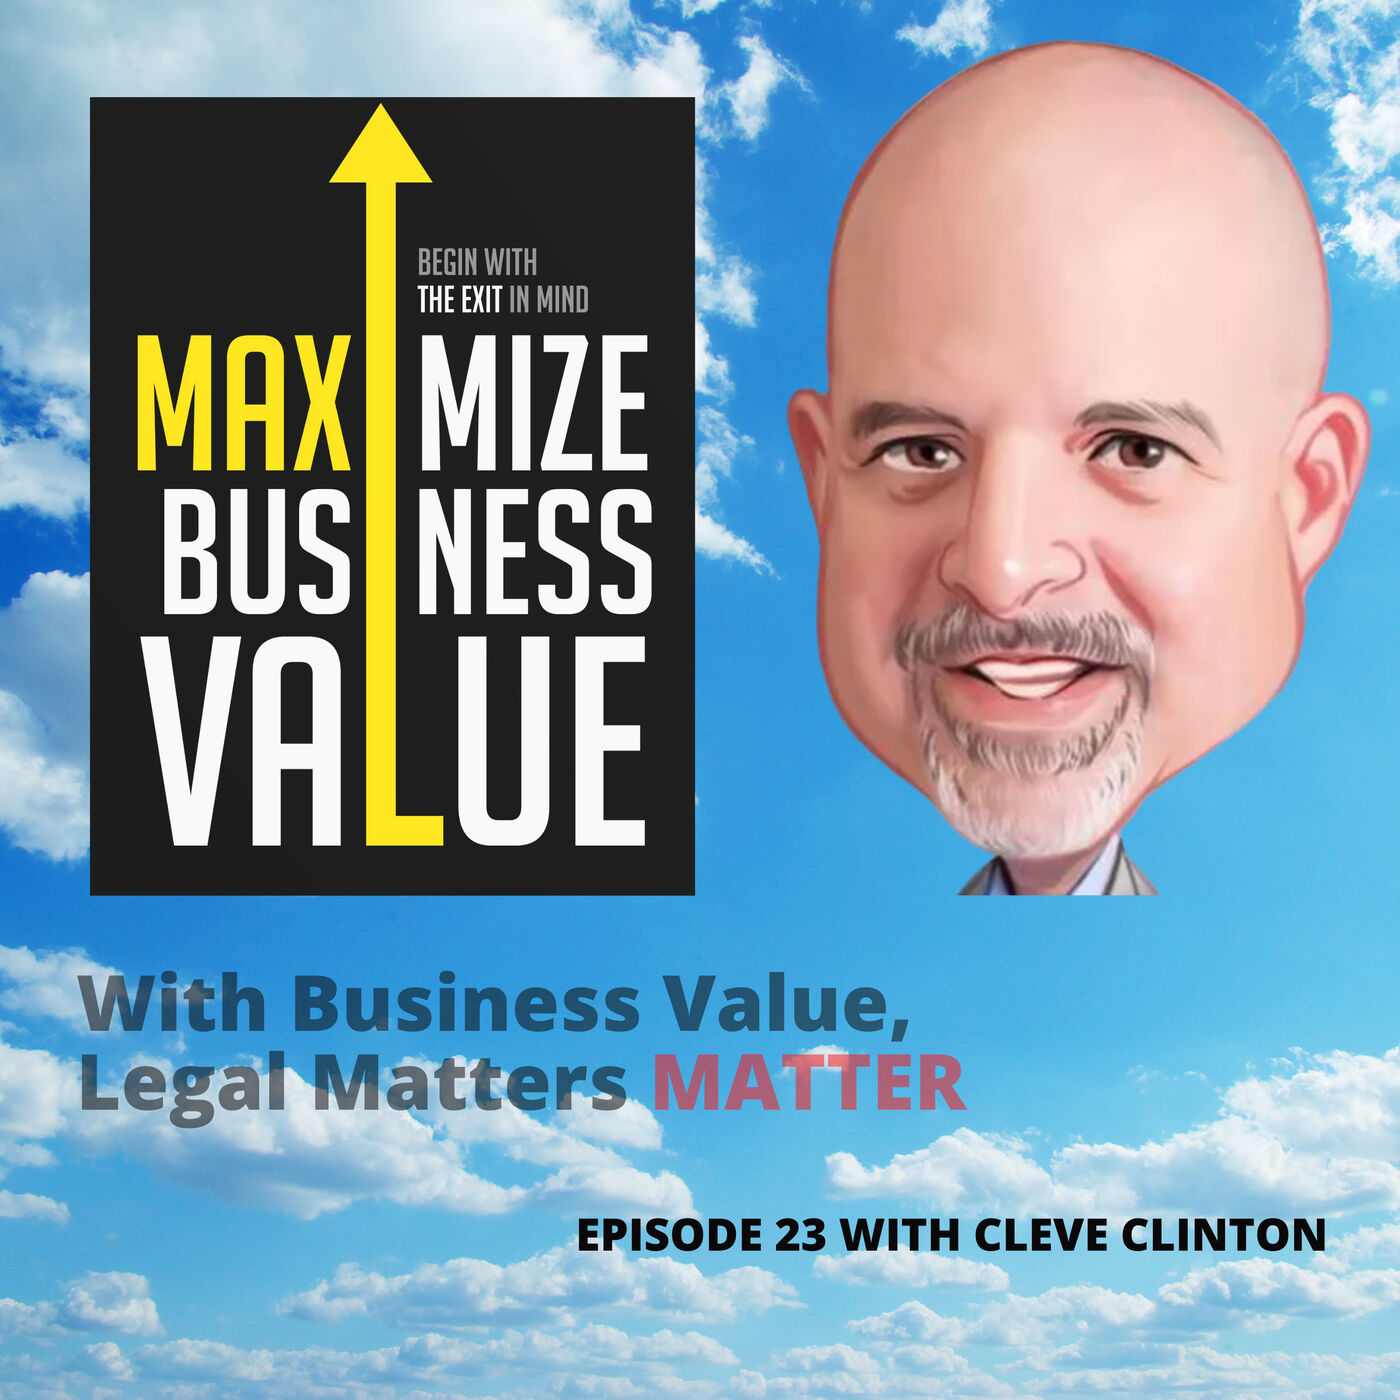 With Business Value, Legal Matters Matter